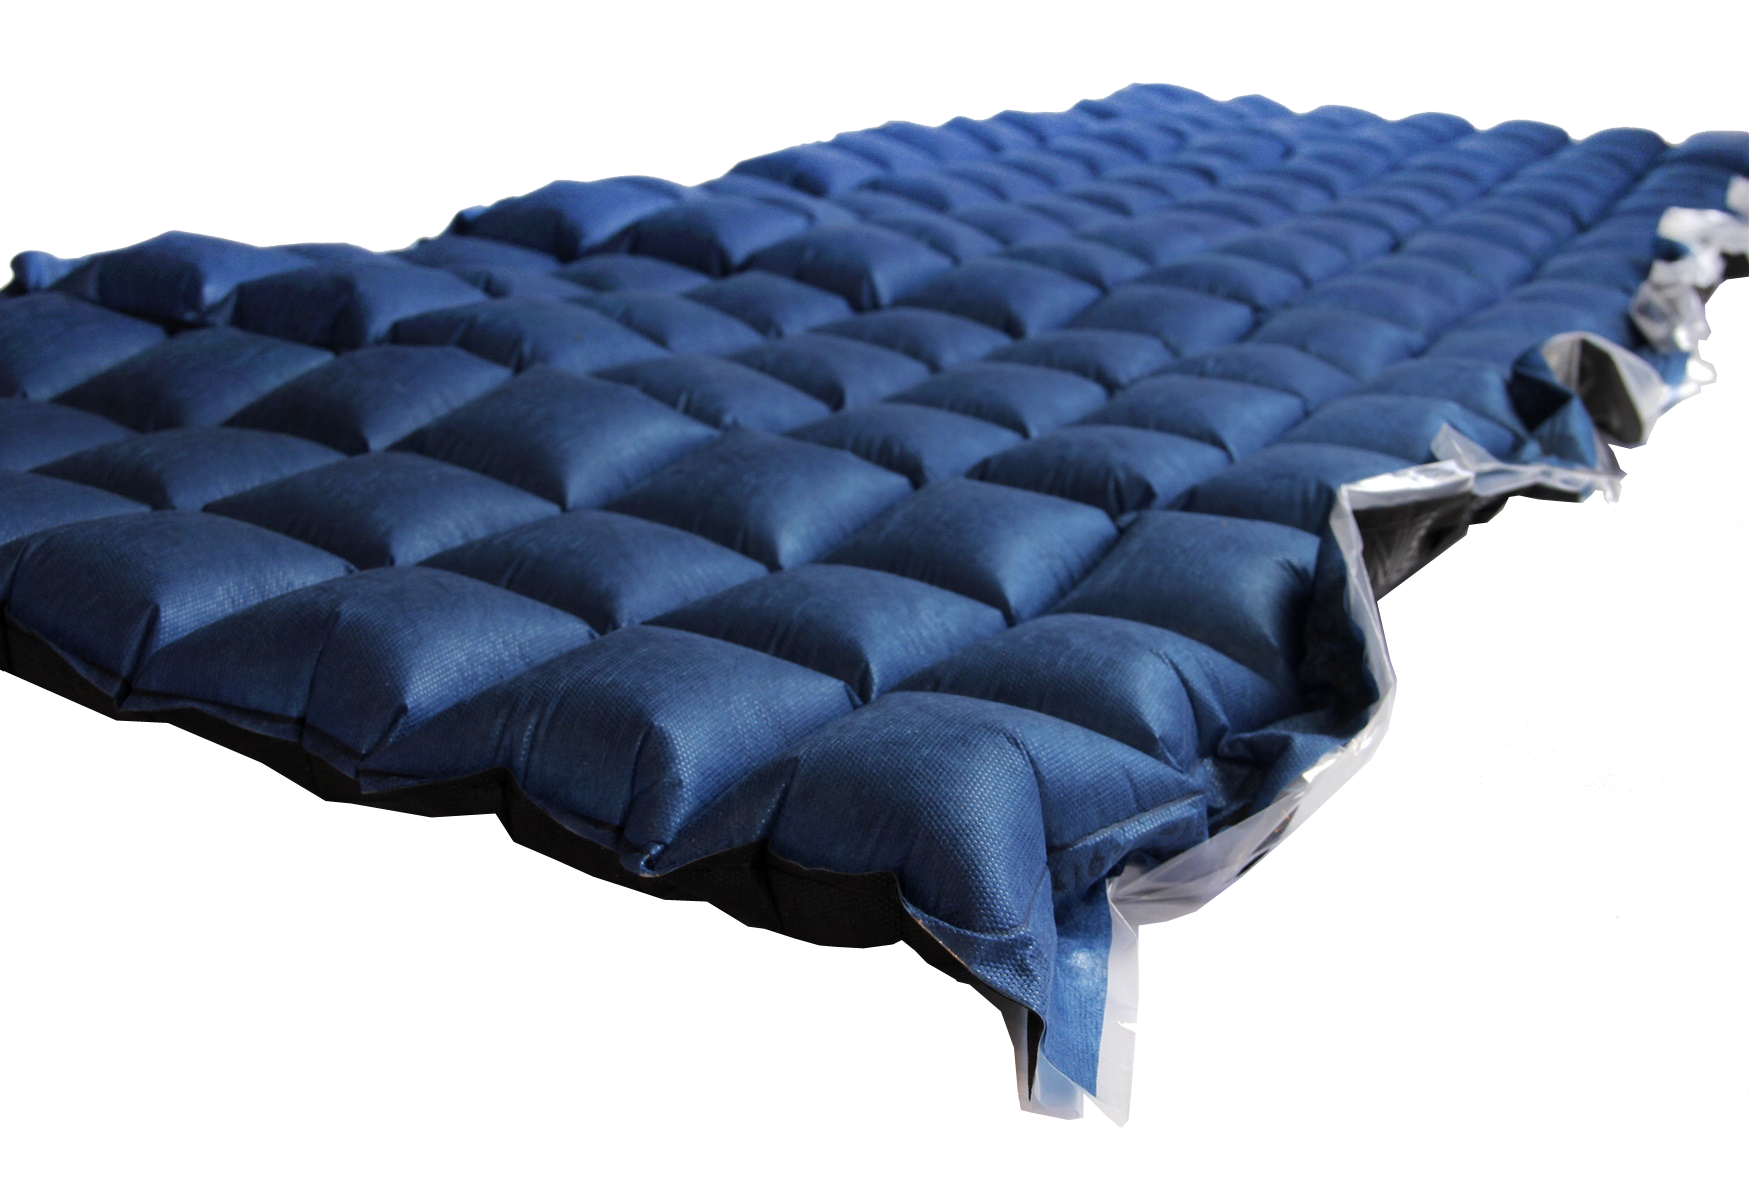 lifebed-1